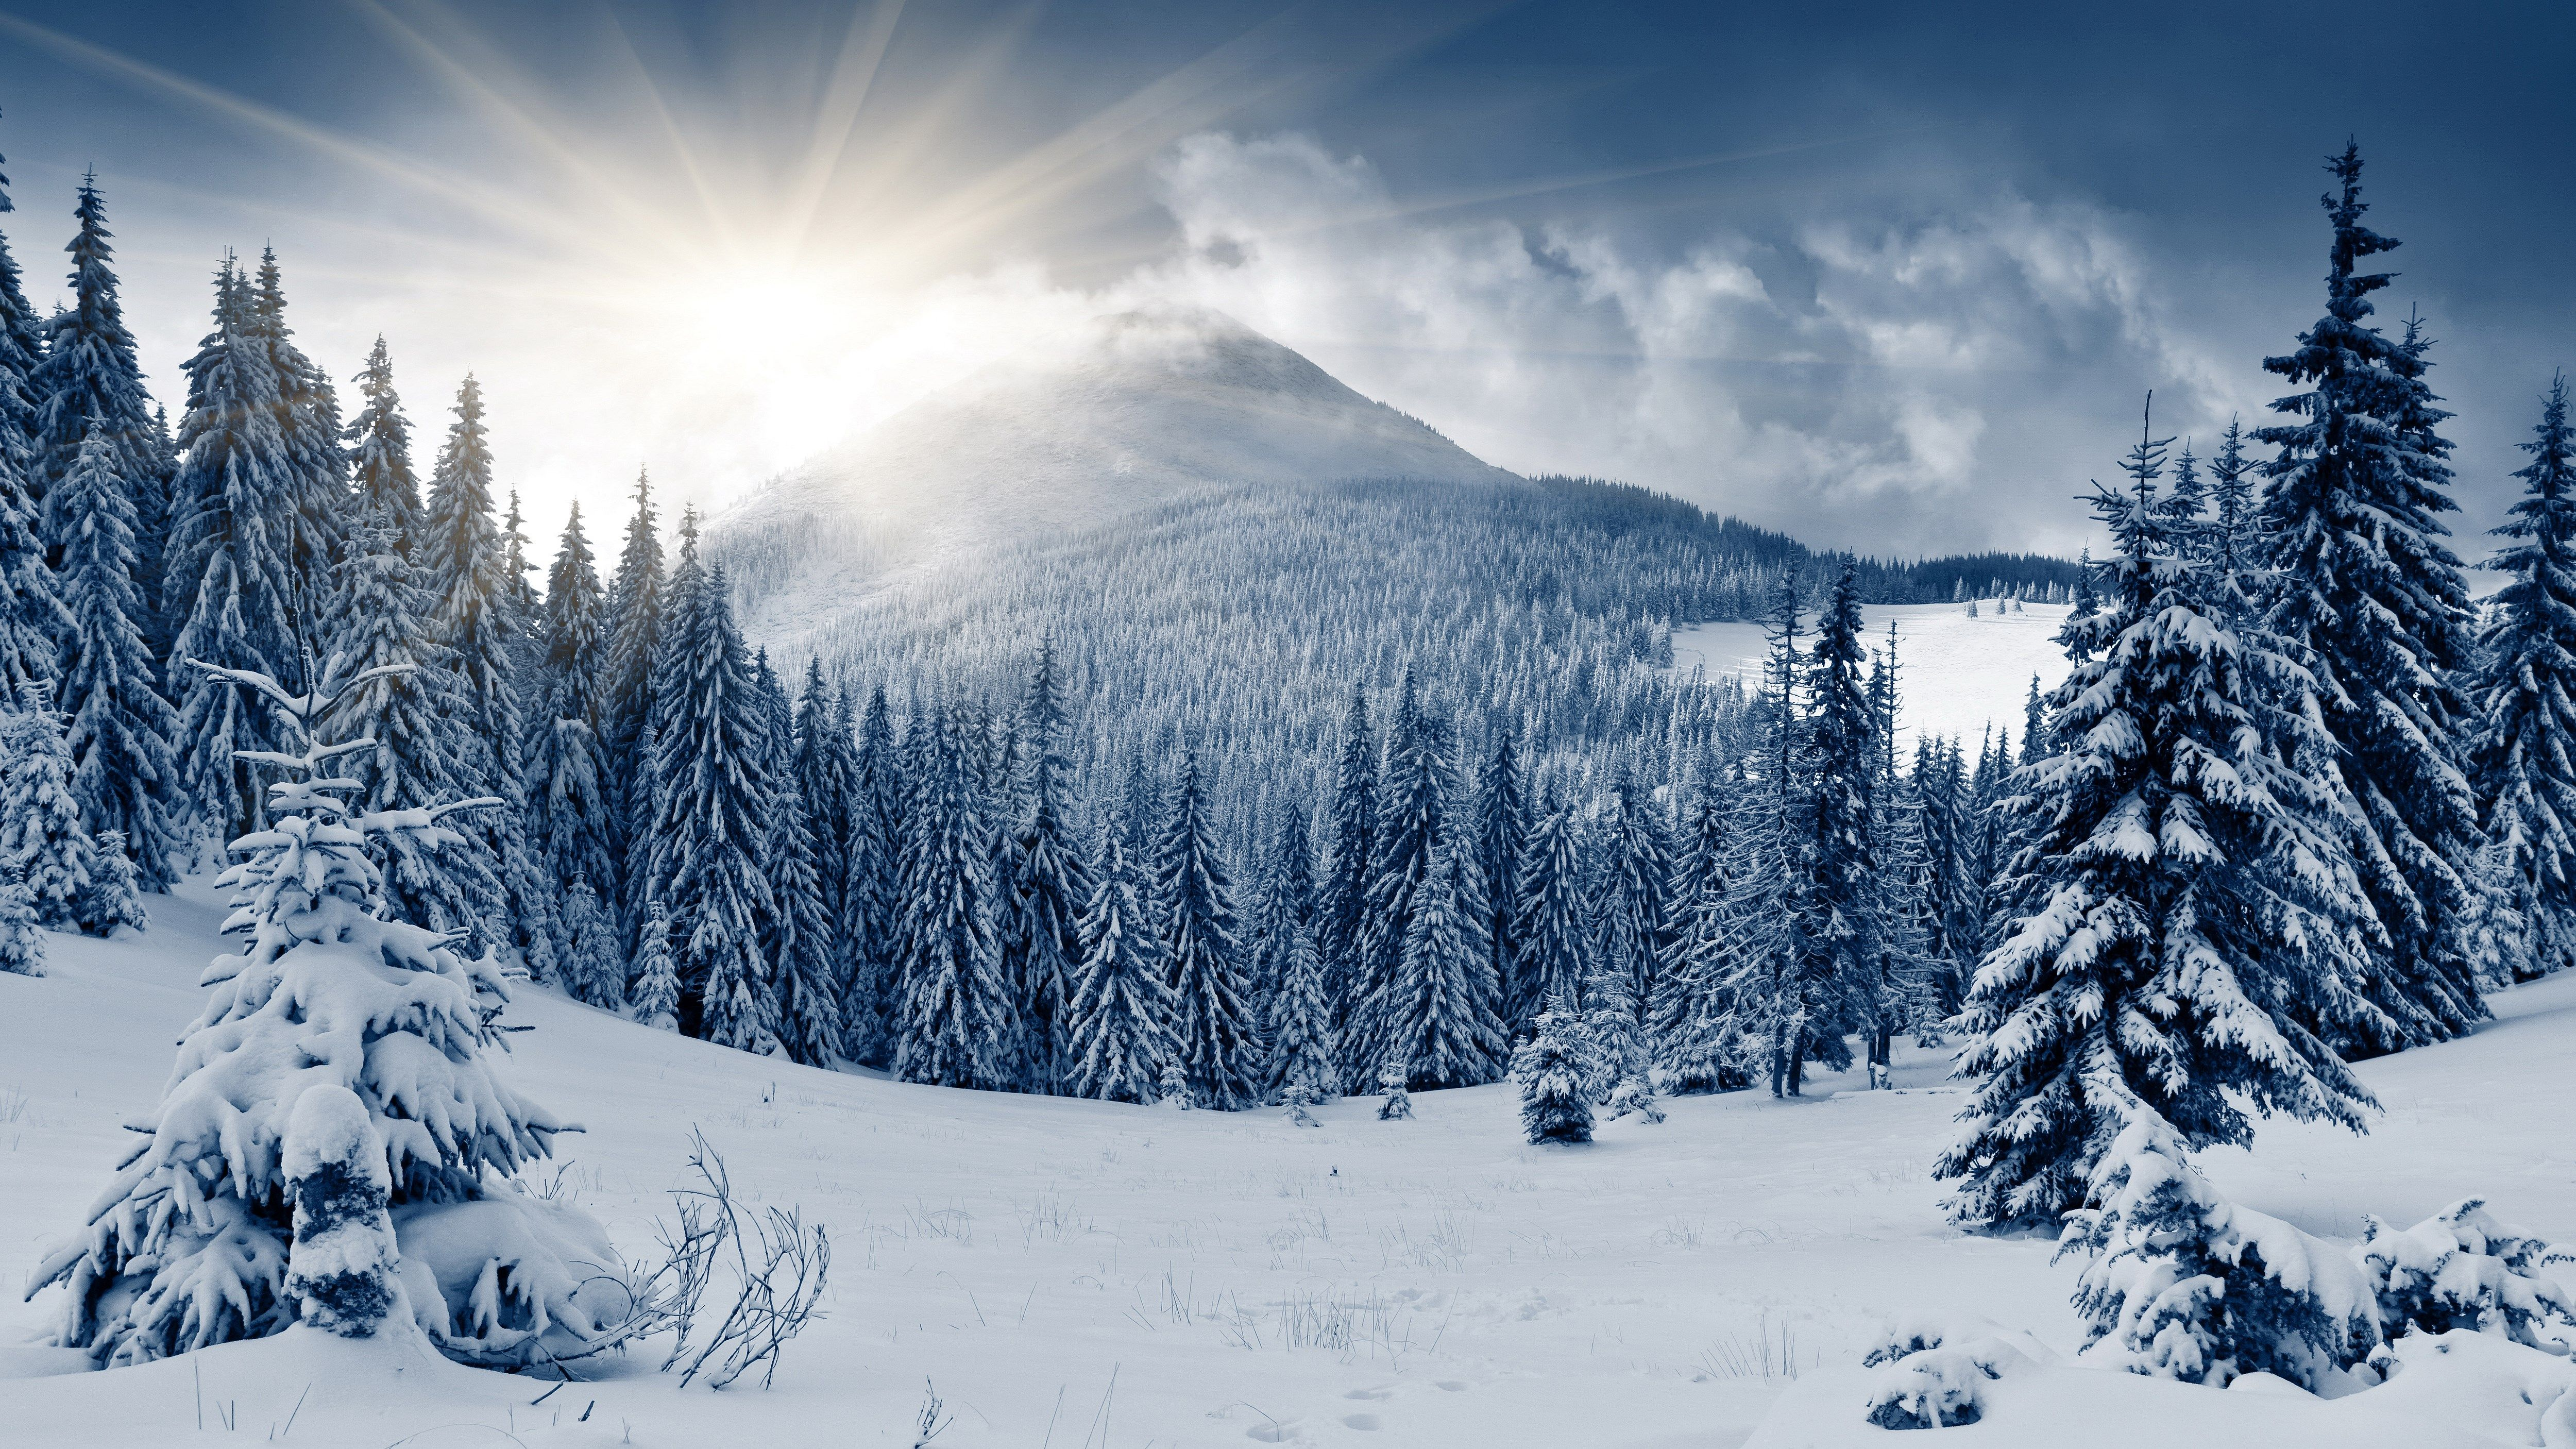 Winter Scenes Desktop Backgrounds Free 5000x2812 Winter Forest Winter Landscape Forest Wallpaper